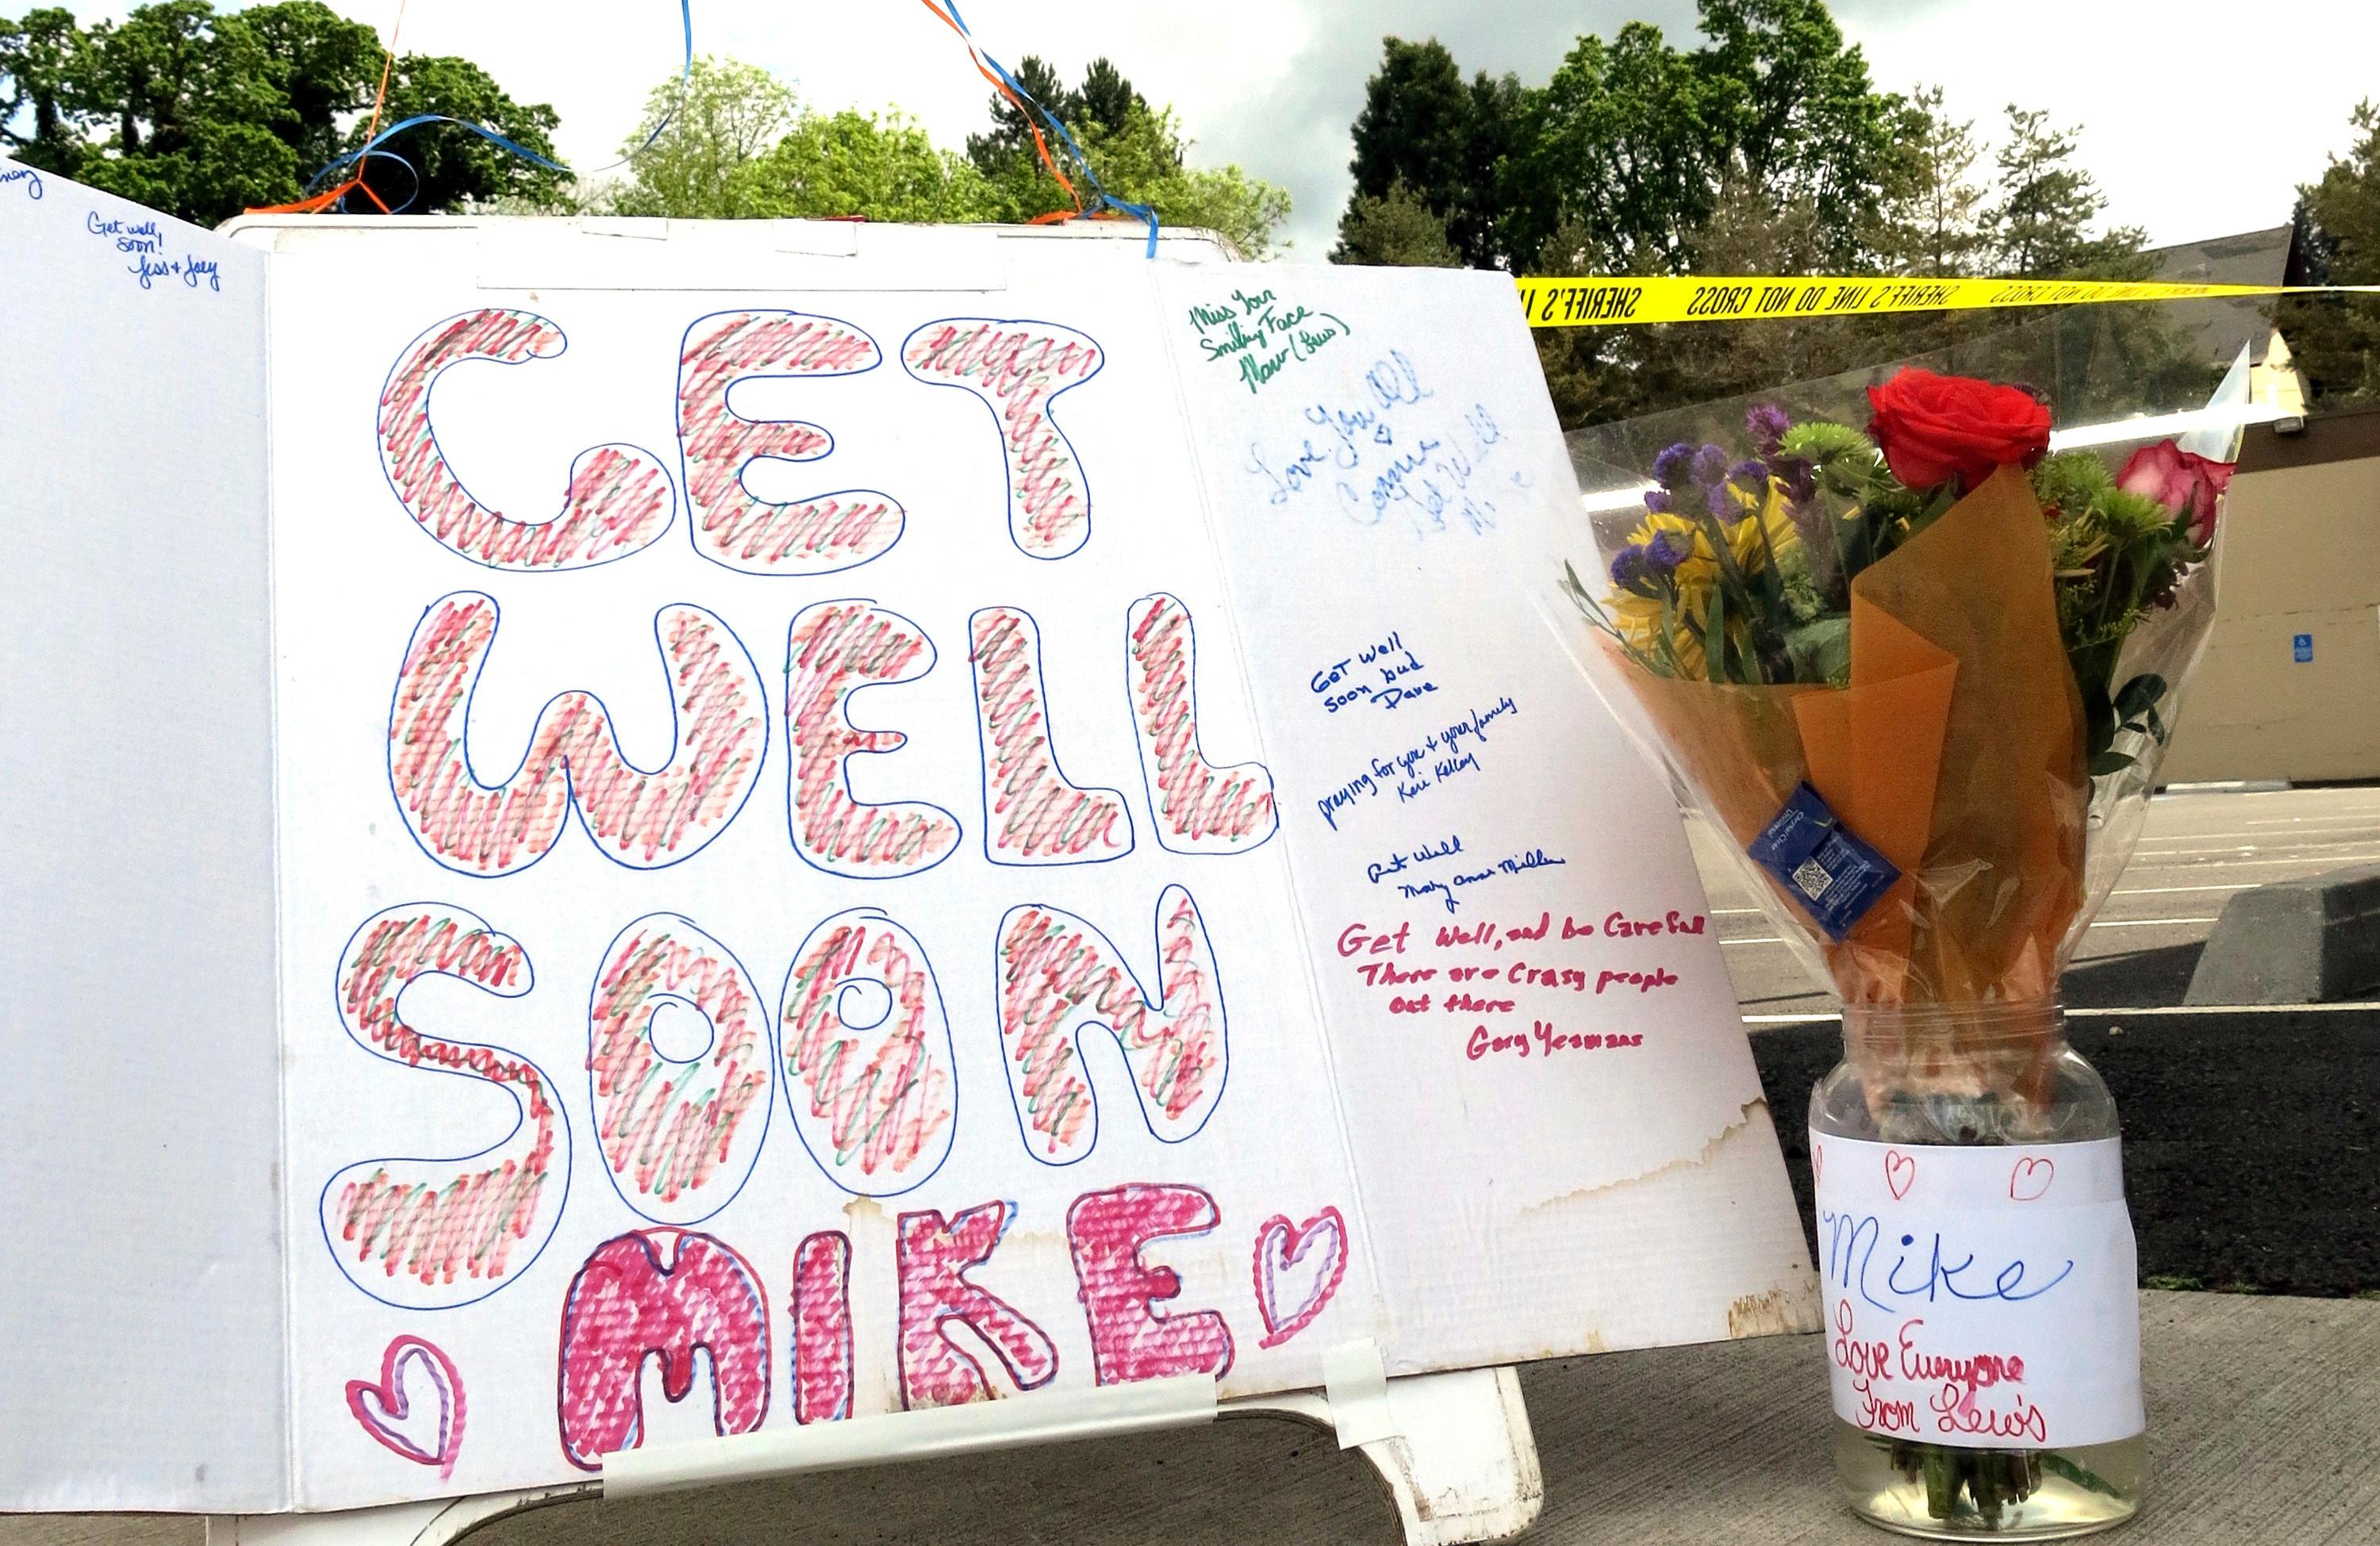 Well-wishing messages and flowers for an injured employee are shown outside a grocery store in Estacada, Ore., Monday, May 15, 2017. Police say a man carrying what appeared to be a human head stabbed an employee at the grocery store. (AP Photo/Gillian Flaccus)